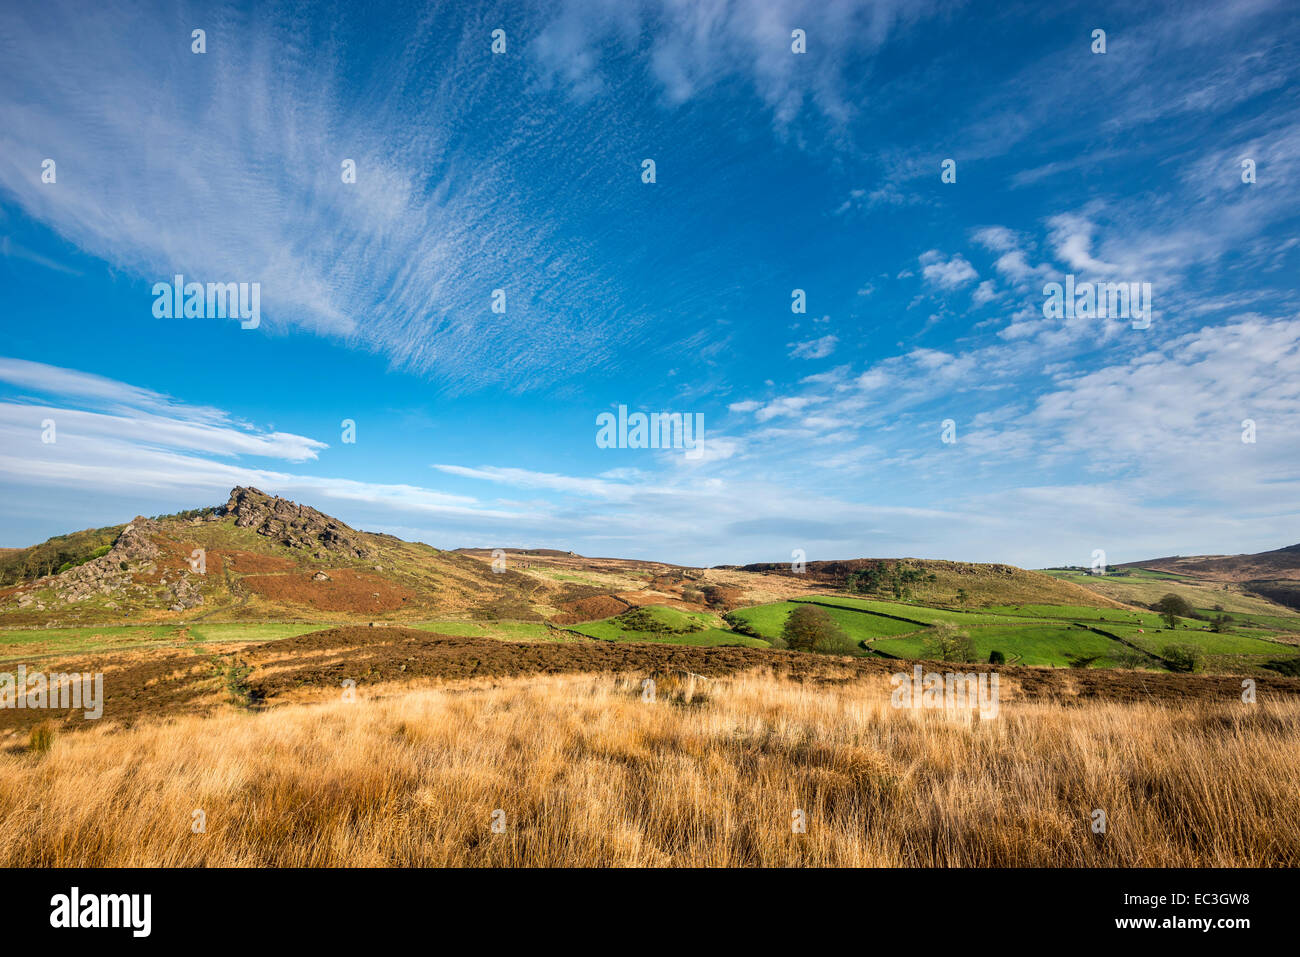 Blue sky with patterns of high clouds above a moorland landscape of heather and grasses with gritstone outcrops - Stock Image